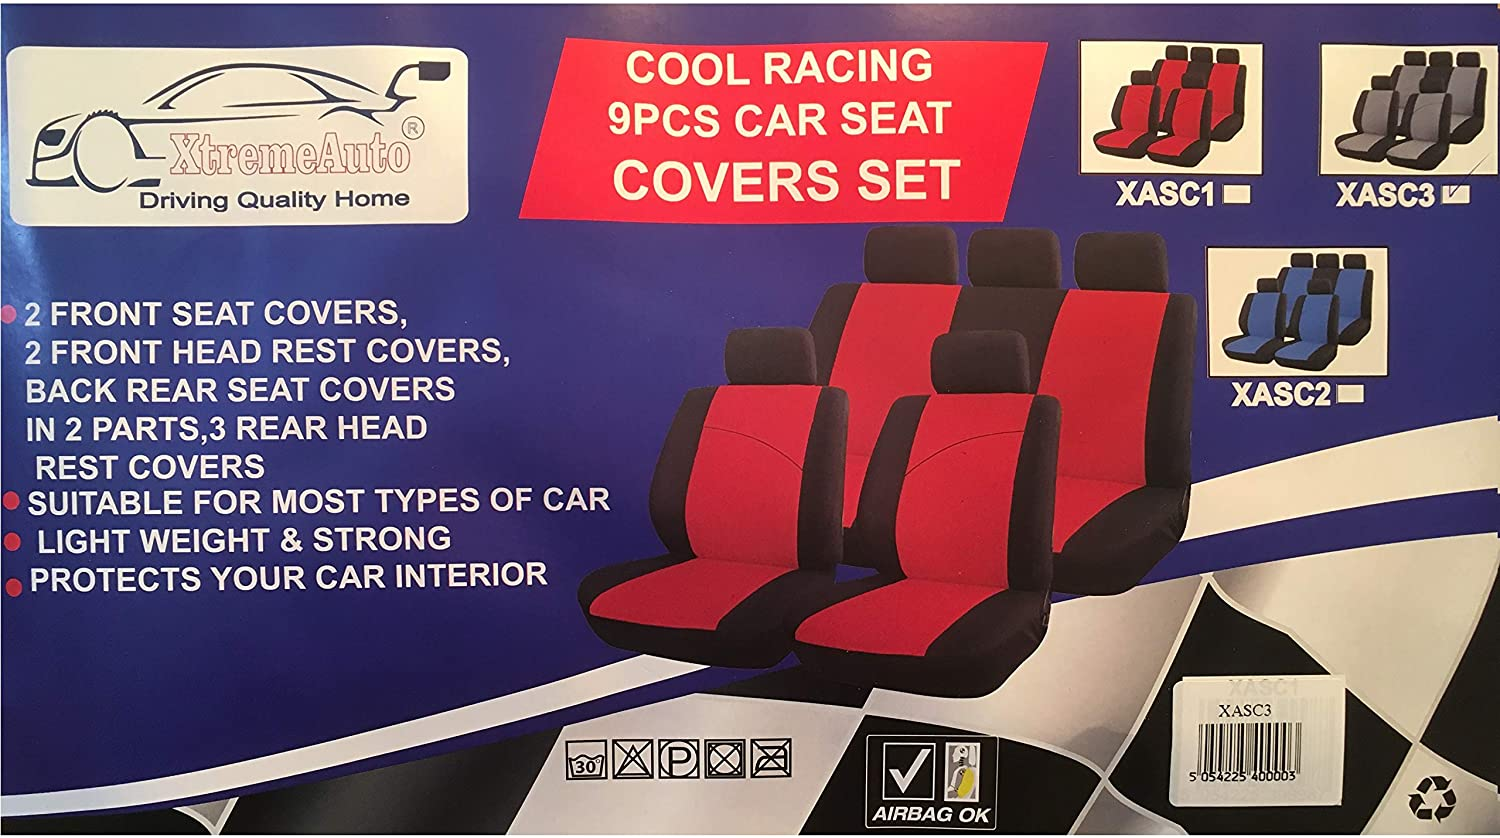 KA S-Max Eco-Sport Edge Fiesta Mondeo Kuga Xtremeauto Red and Black Sport Car Seat Cover Protectors Focus Escort C-Max